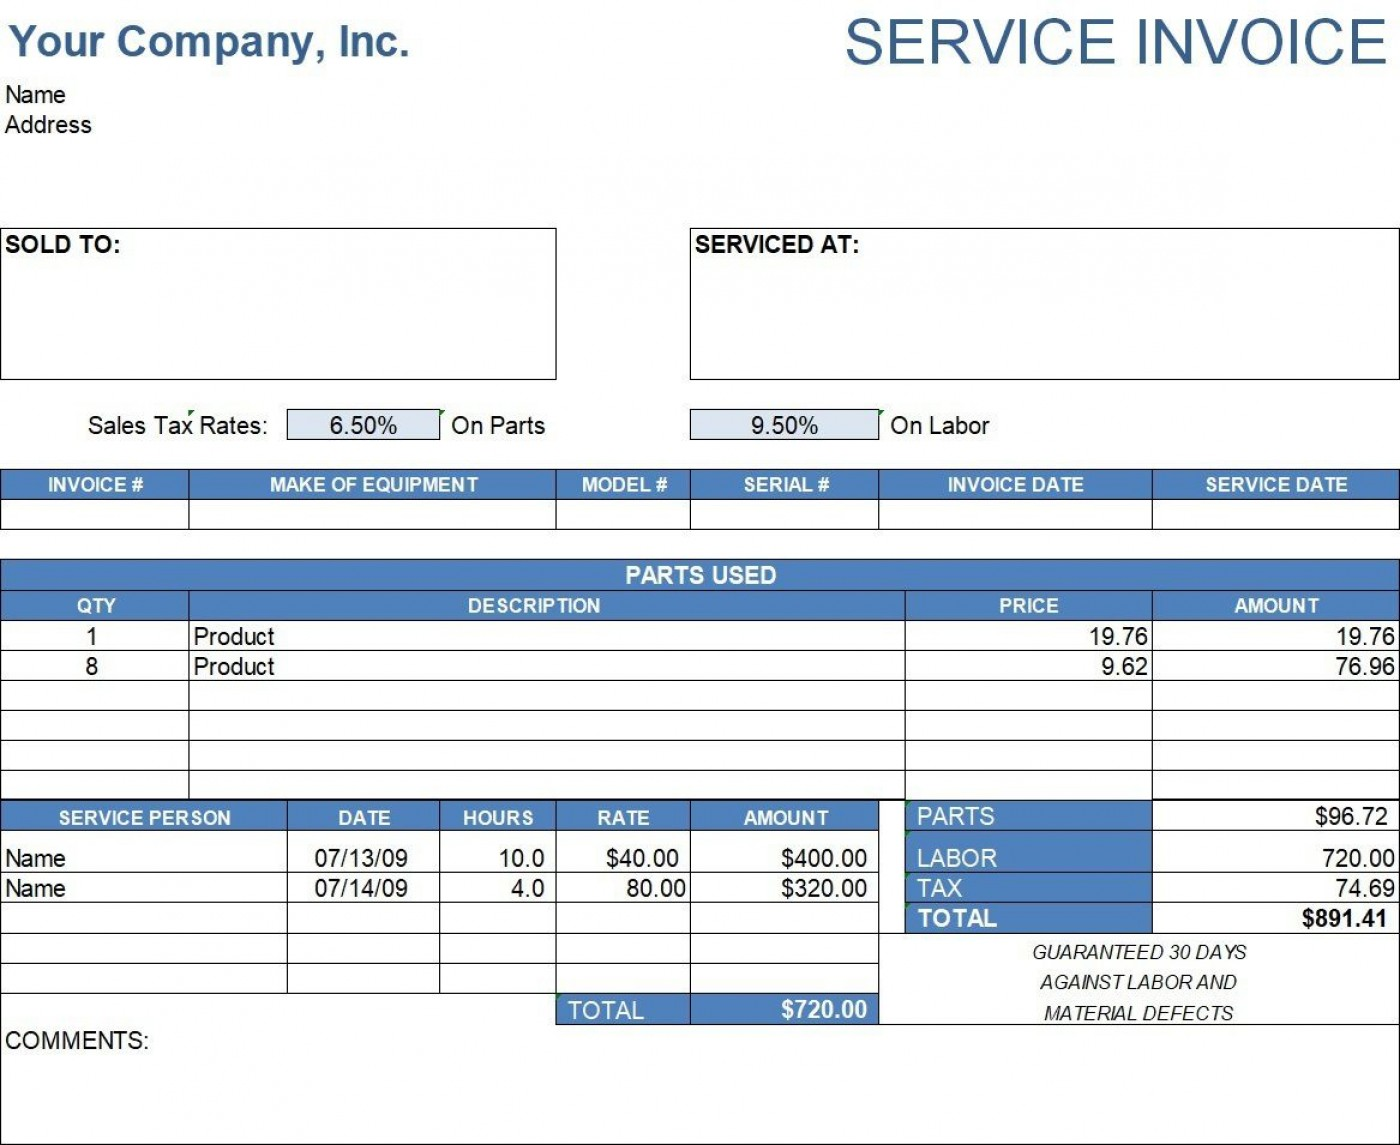 002 Remarkable Service Invoice Template Free Photo  Rendered Word Auto Download1400